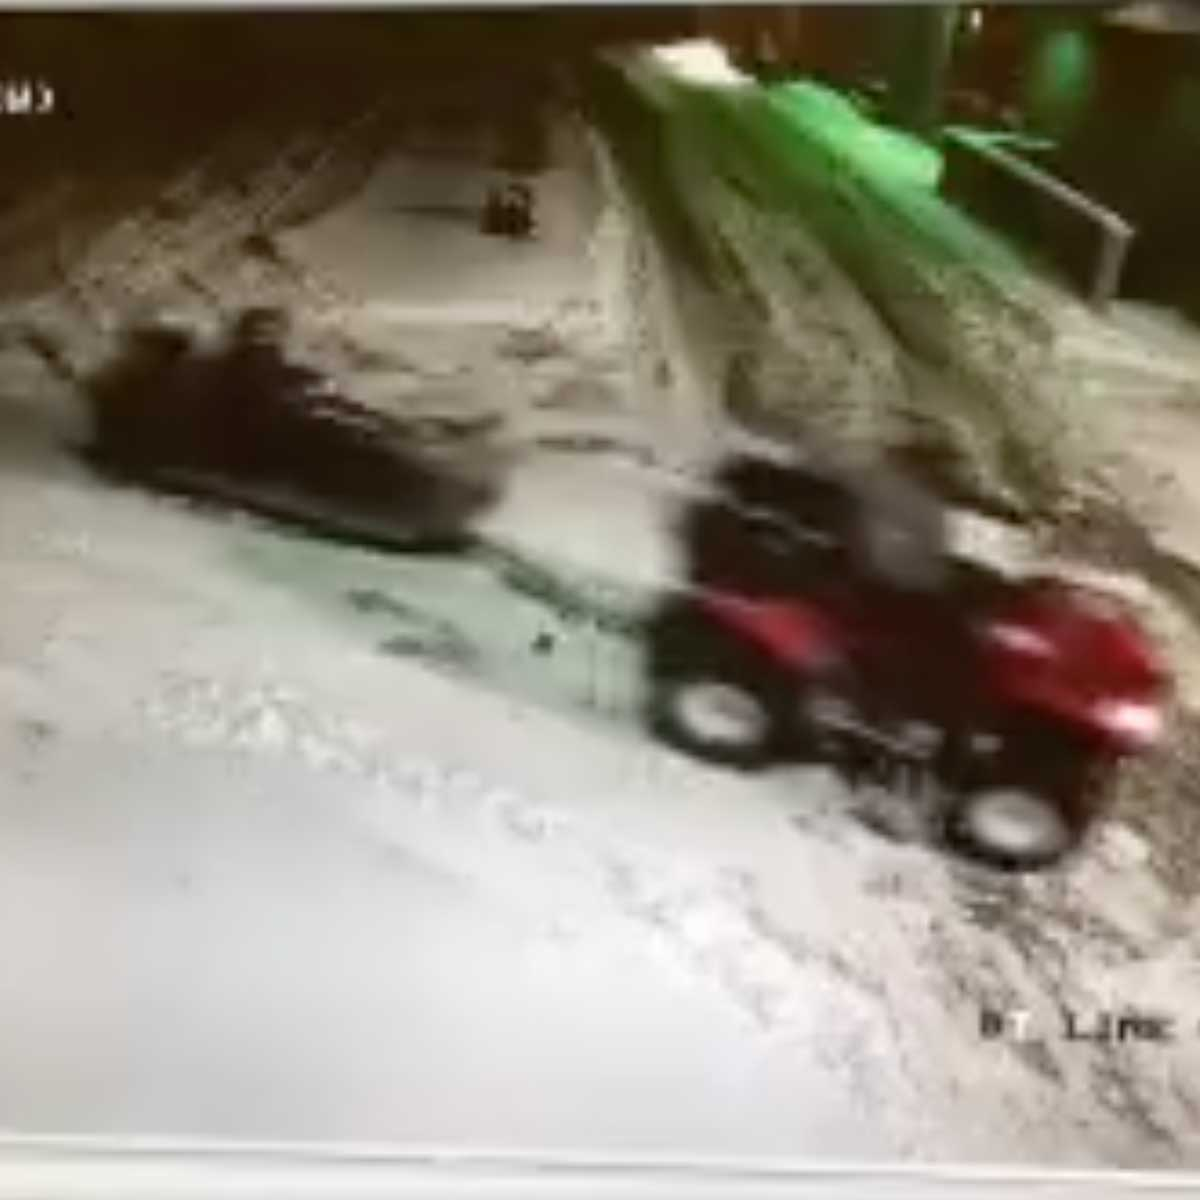 Drunk Canadian Men Arrested for Riding Couch Towed Behind ATV Through McDonalds Drive Thru